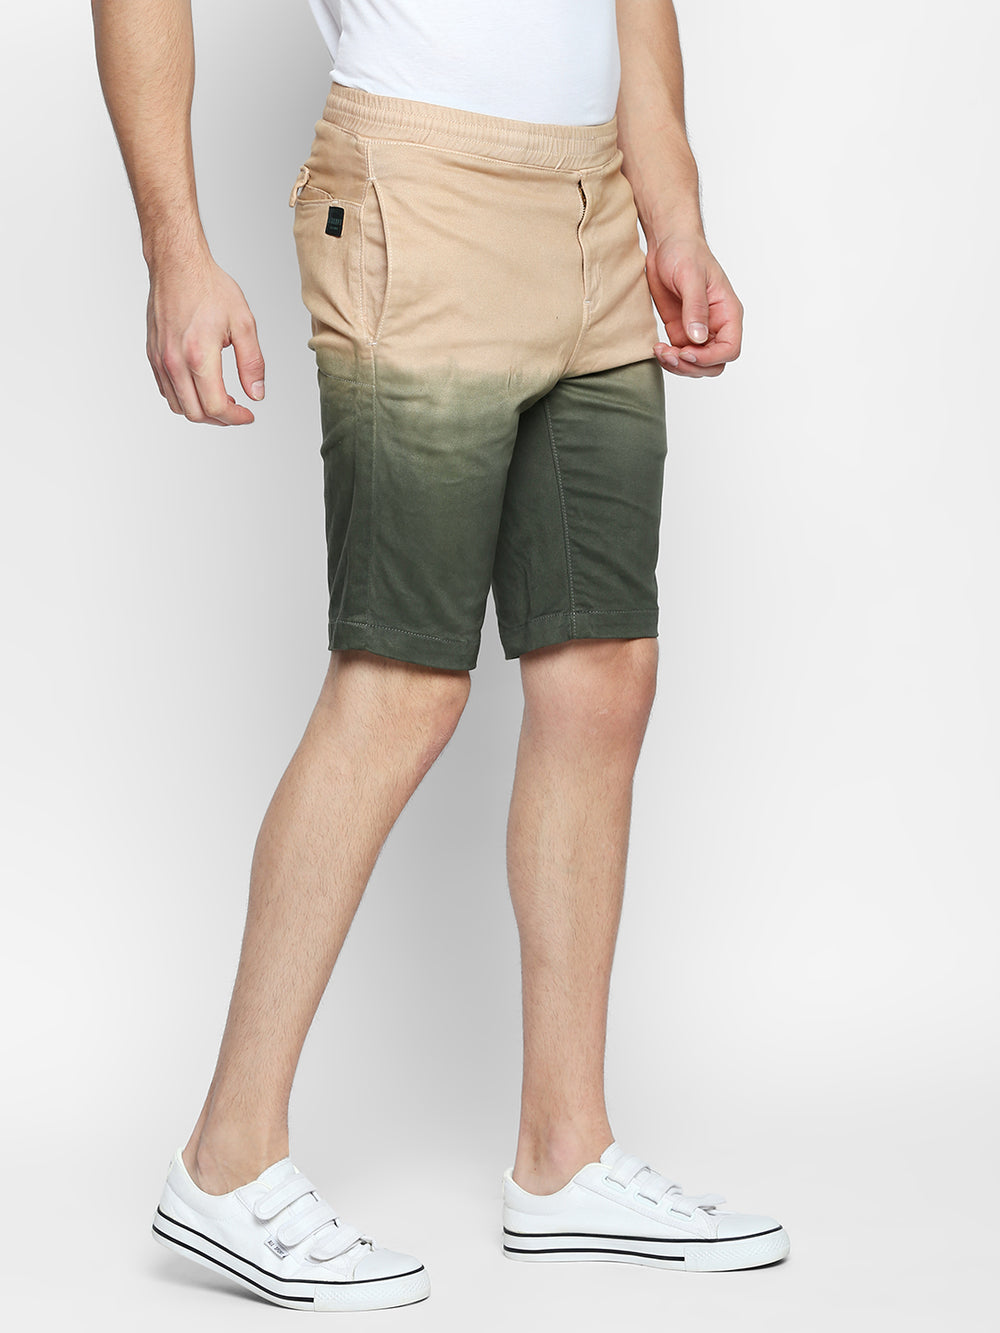 Disrupt Beige Cotton Regular Fit Shorts For Men's